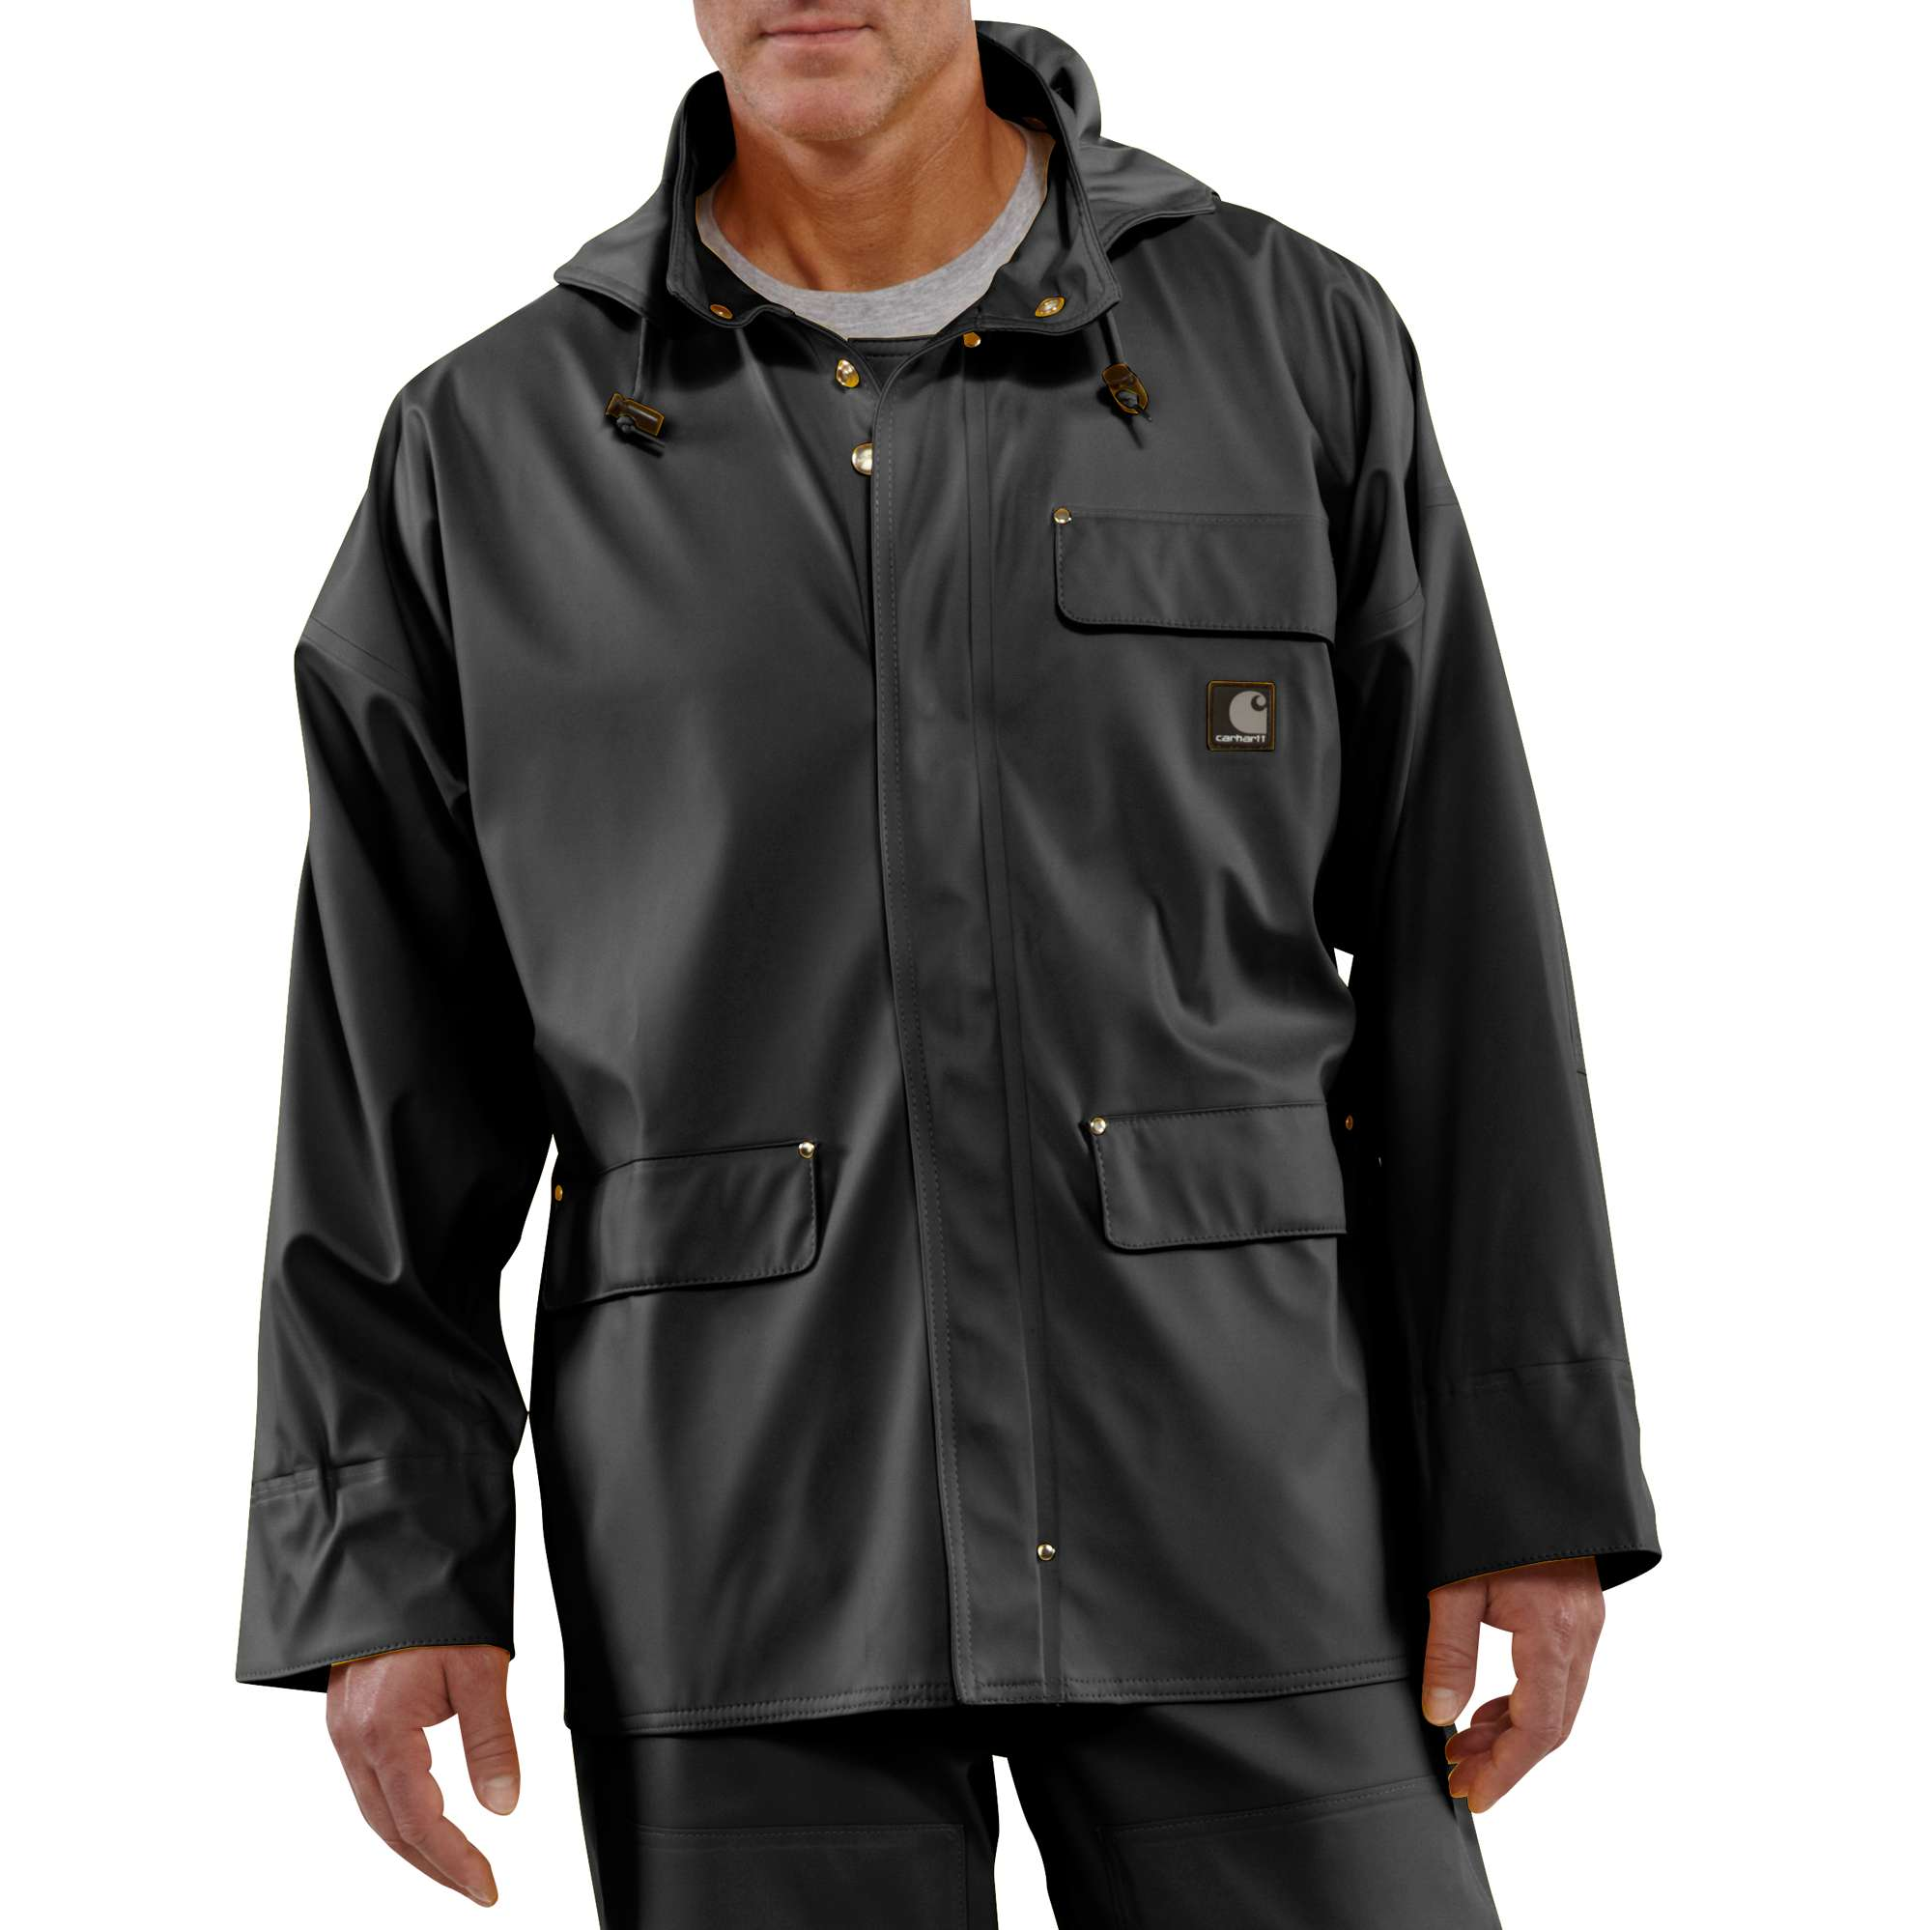 Carhartt Men's WorkFlex Coat